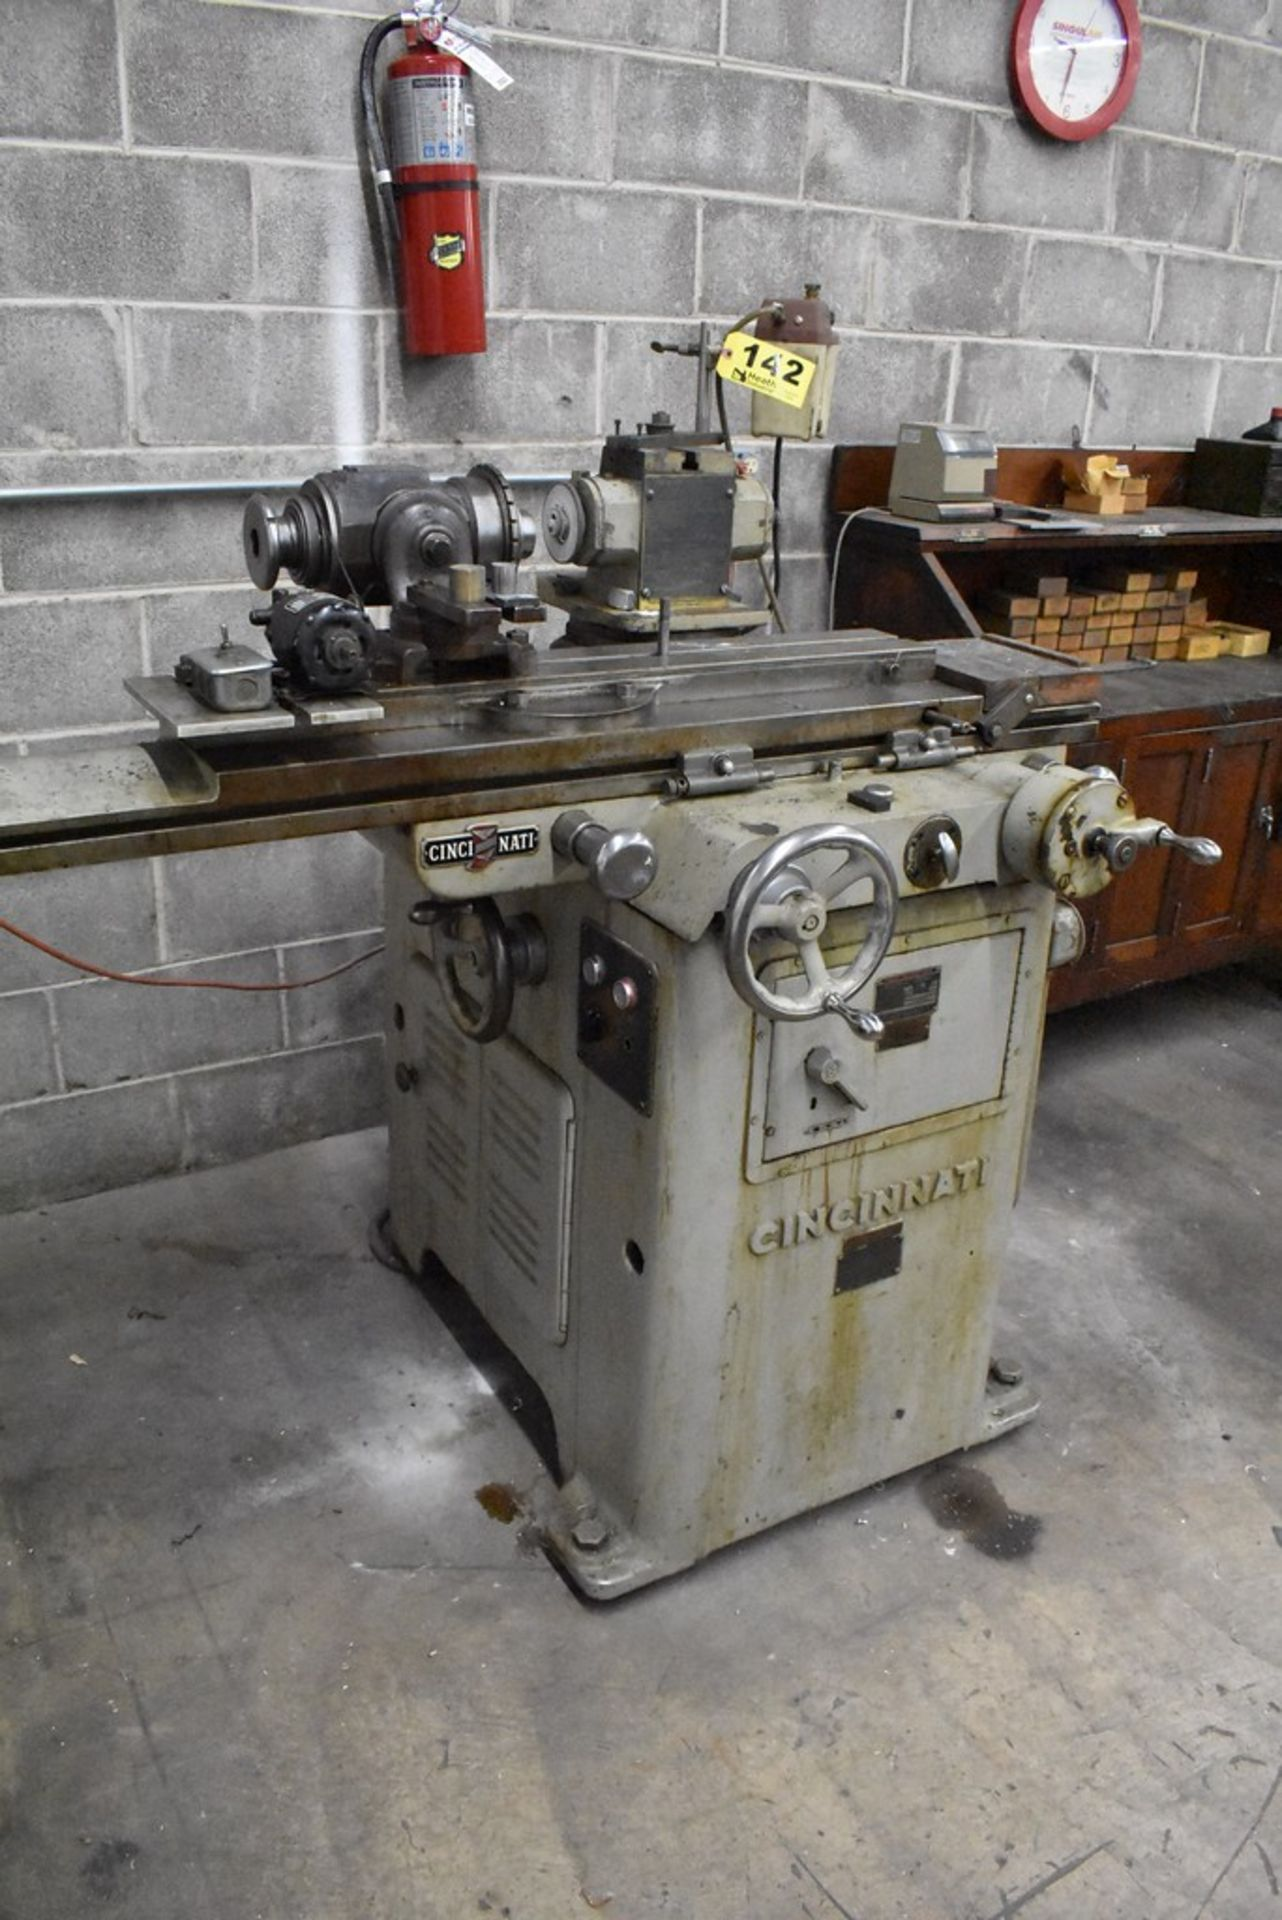 CINCINNATI NO. 2 TOOL AND CUTTER GRINDER, S/N 1D2T1Z-771, WITH MOTORIZED WORK HEAD - Image 6 of 14